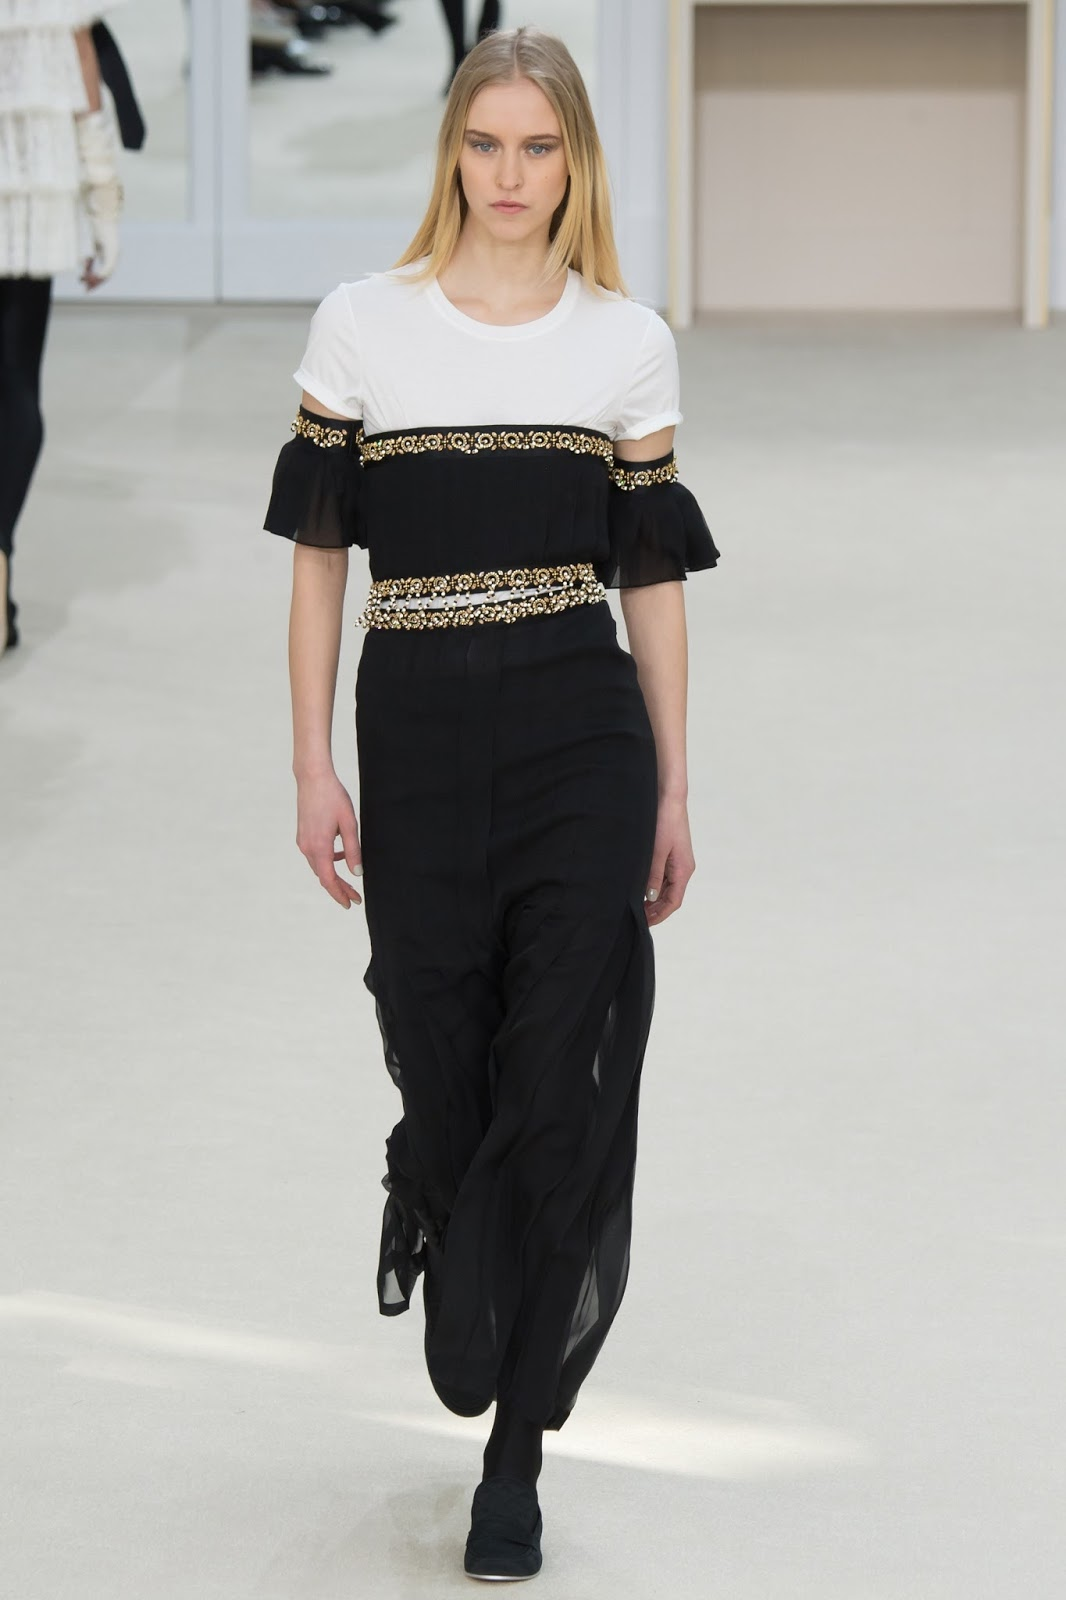 Paris fashion week best collections / Chanel Fall/Winter 2016 via www.fashionedbylove.co.uk british fashion blog